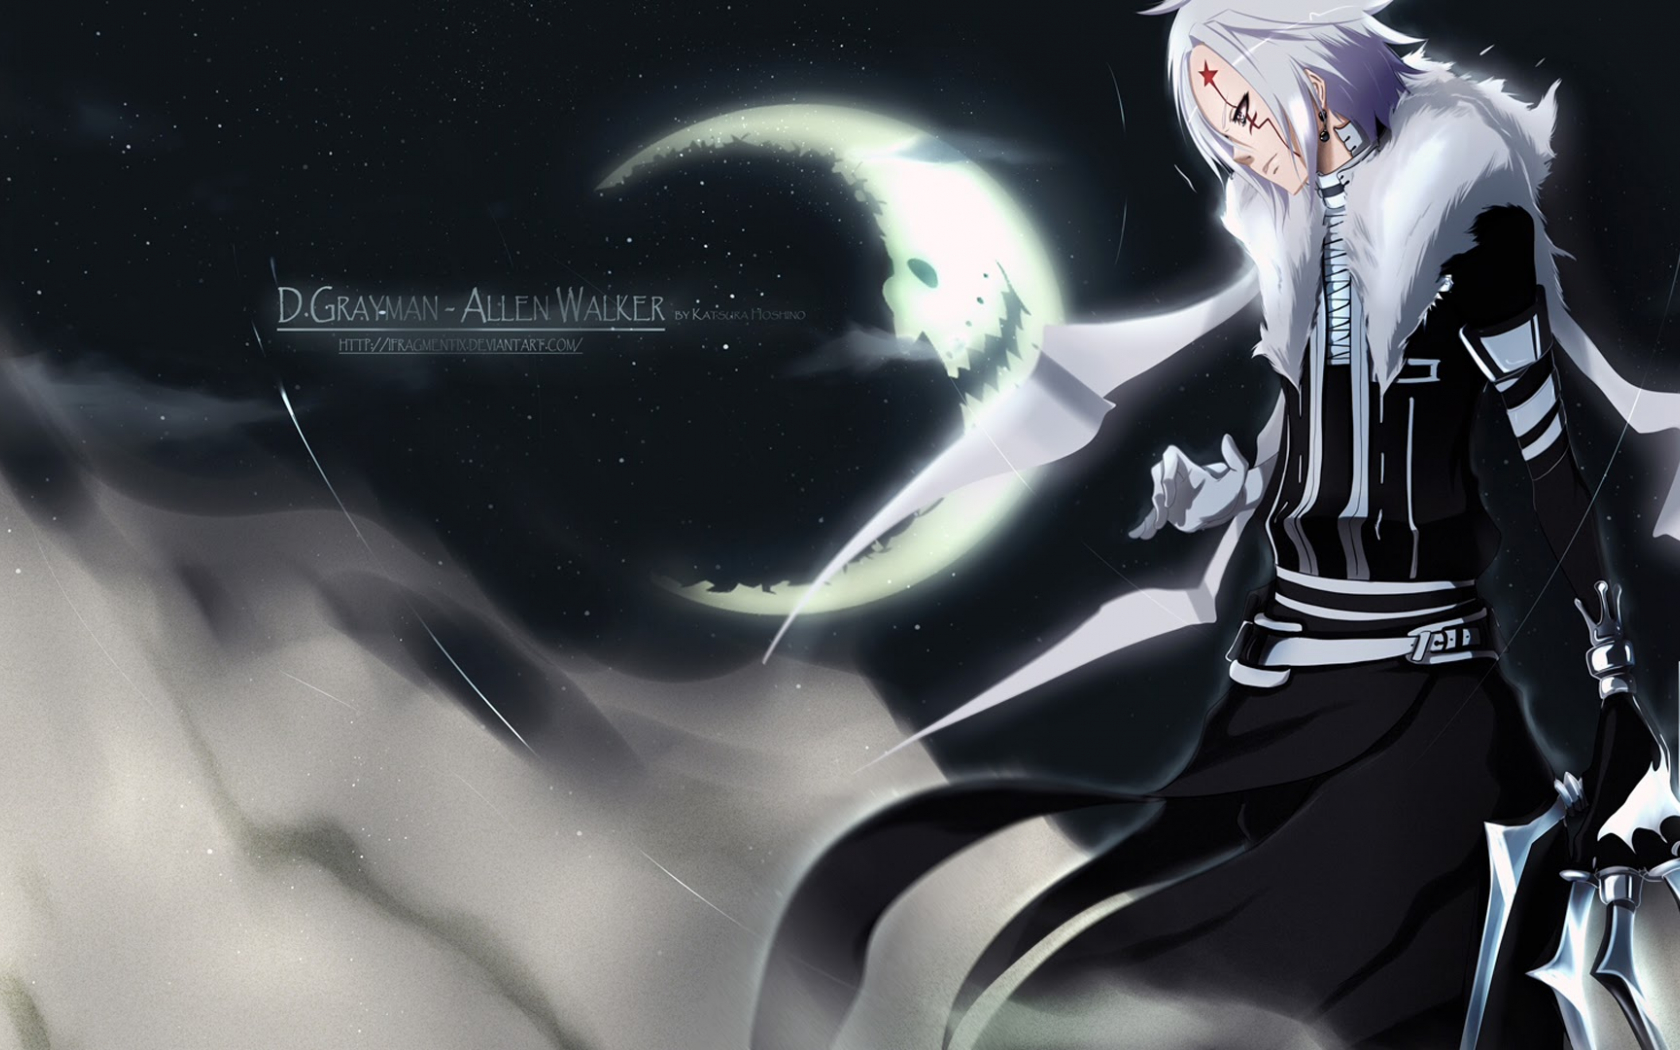 Free Download Allen Walker D Gray Man Hd Wallpaper Anime Deviant